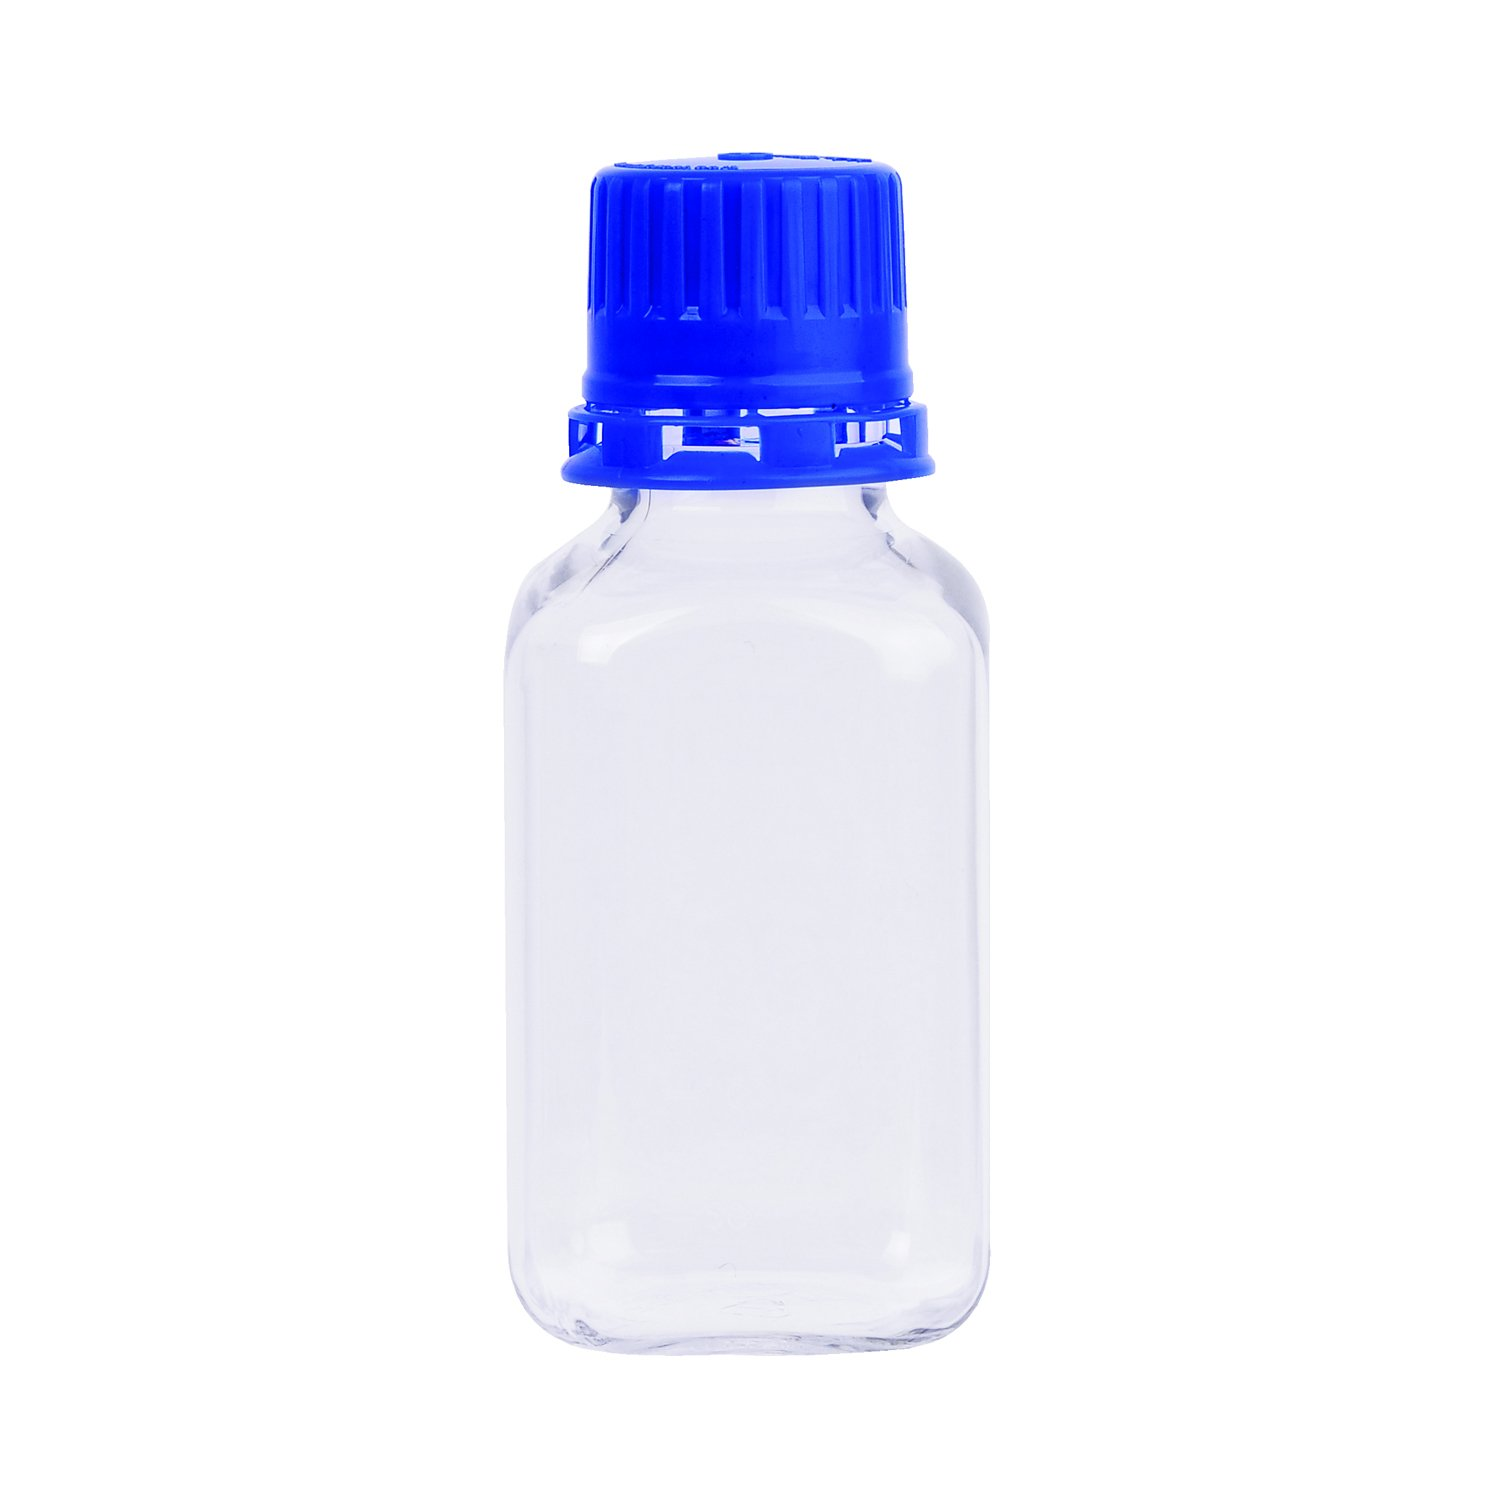 Wheaton WPBGC0250S Square Media Bottle with Tamper Evident Cap, PETG, 250 ml (Pack of 24)